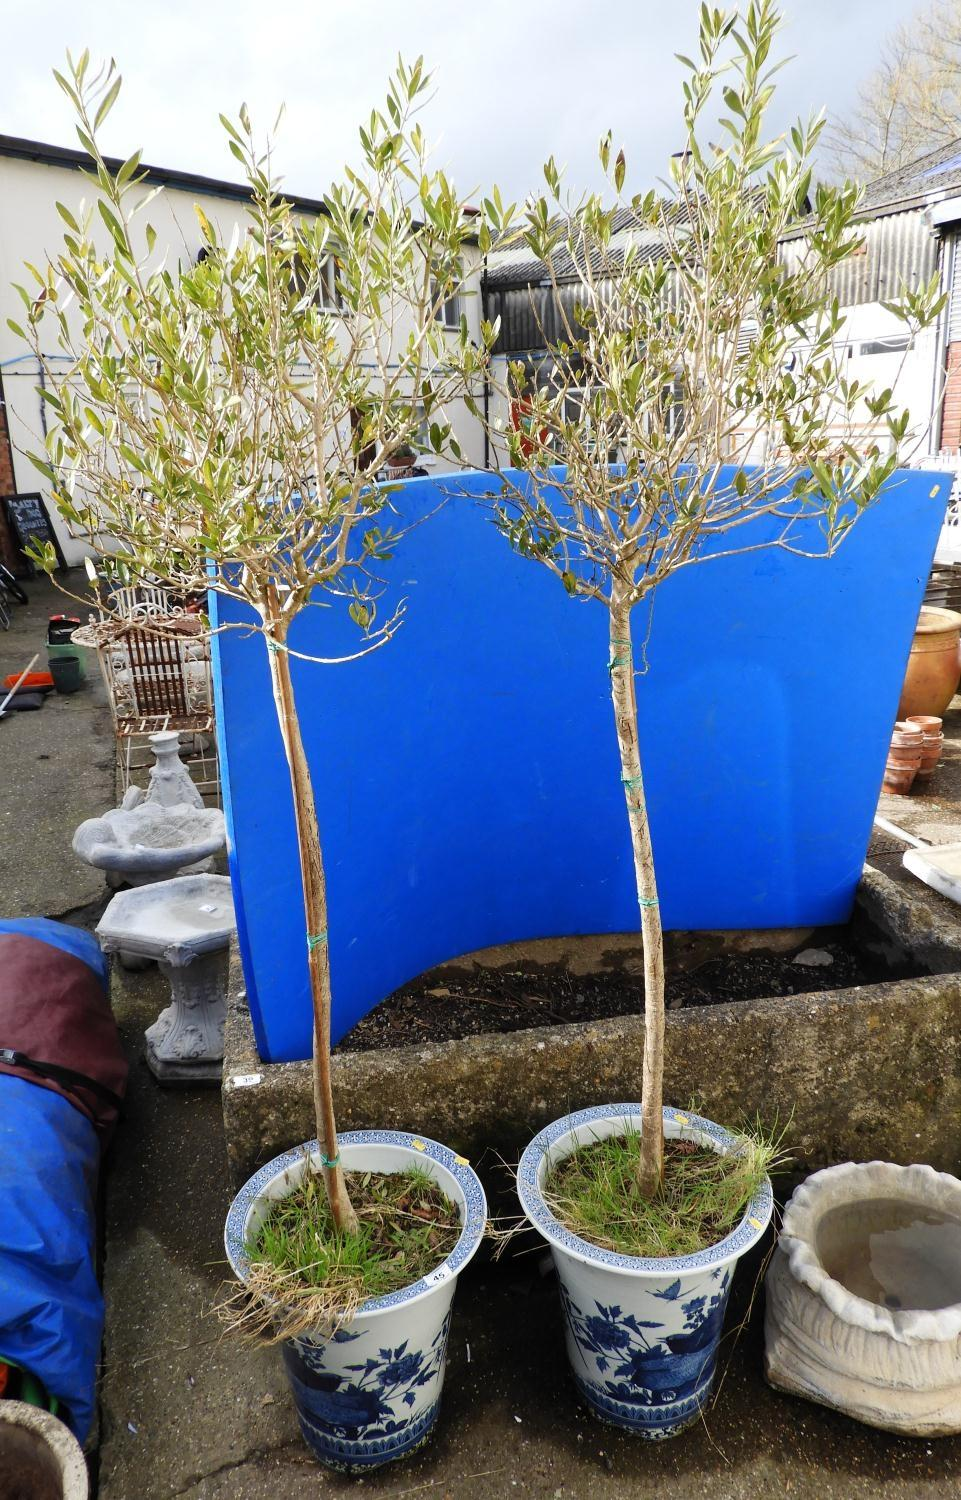 Lot 45 - Pair of Blue and White Chinese Planters and Contents - Shrubs